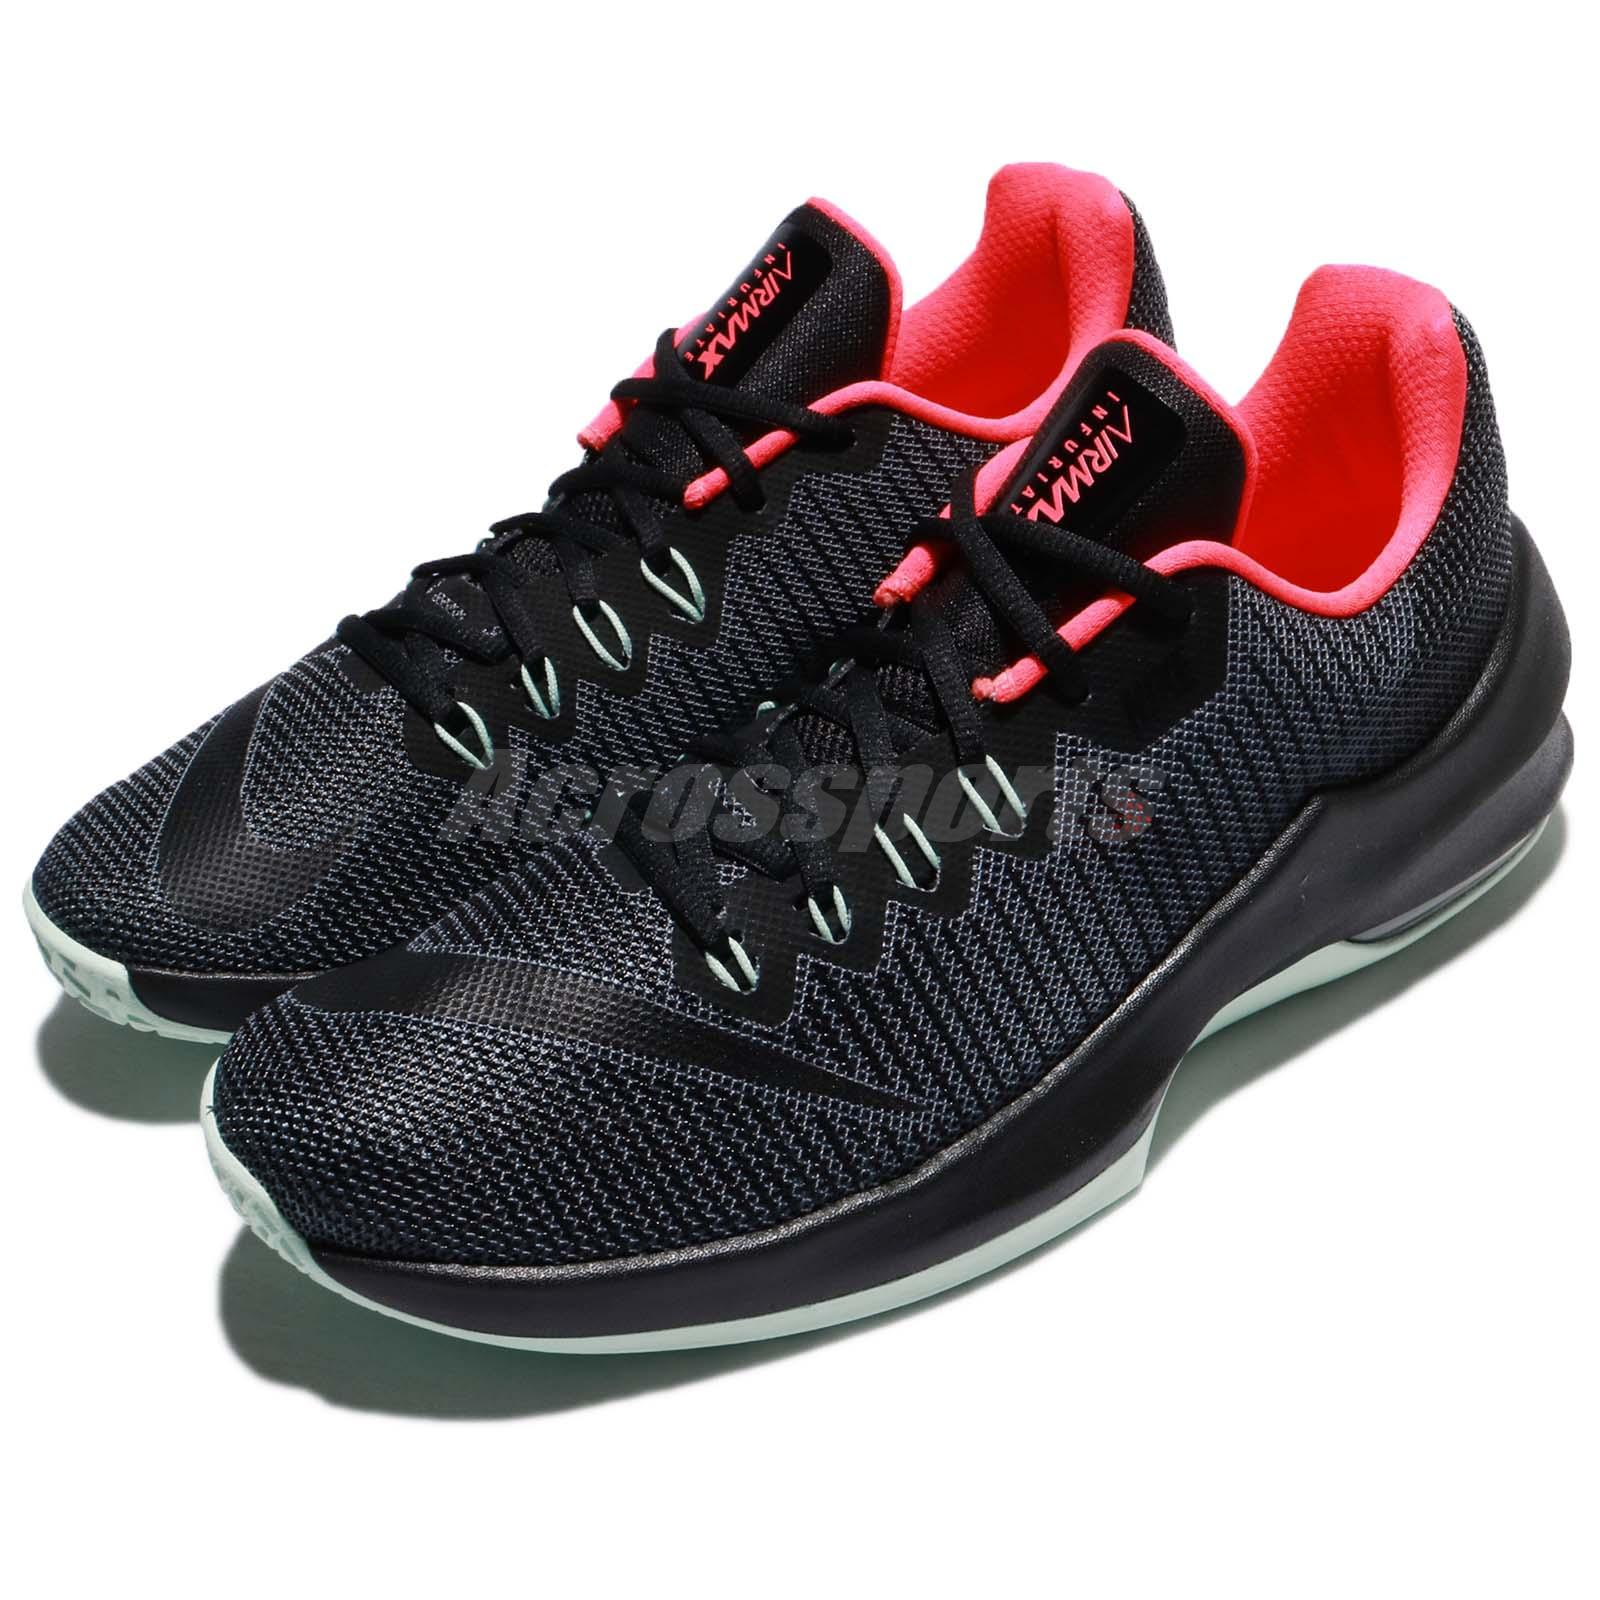 8c6e0c3fa4ed Details about Nike Air Max Infuriate 2 Low EP II Black Mint Men Basketball  Shoes 908977-006